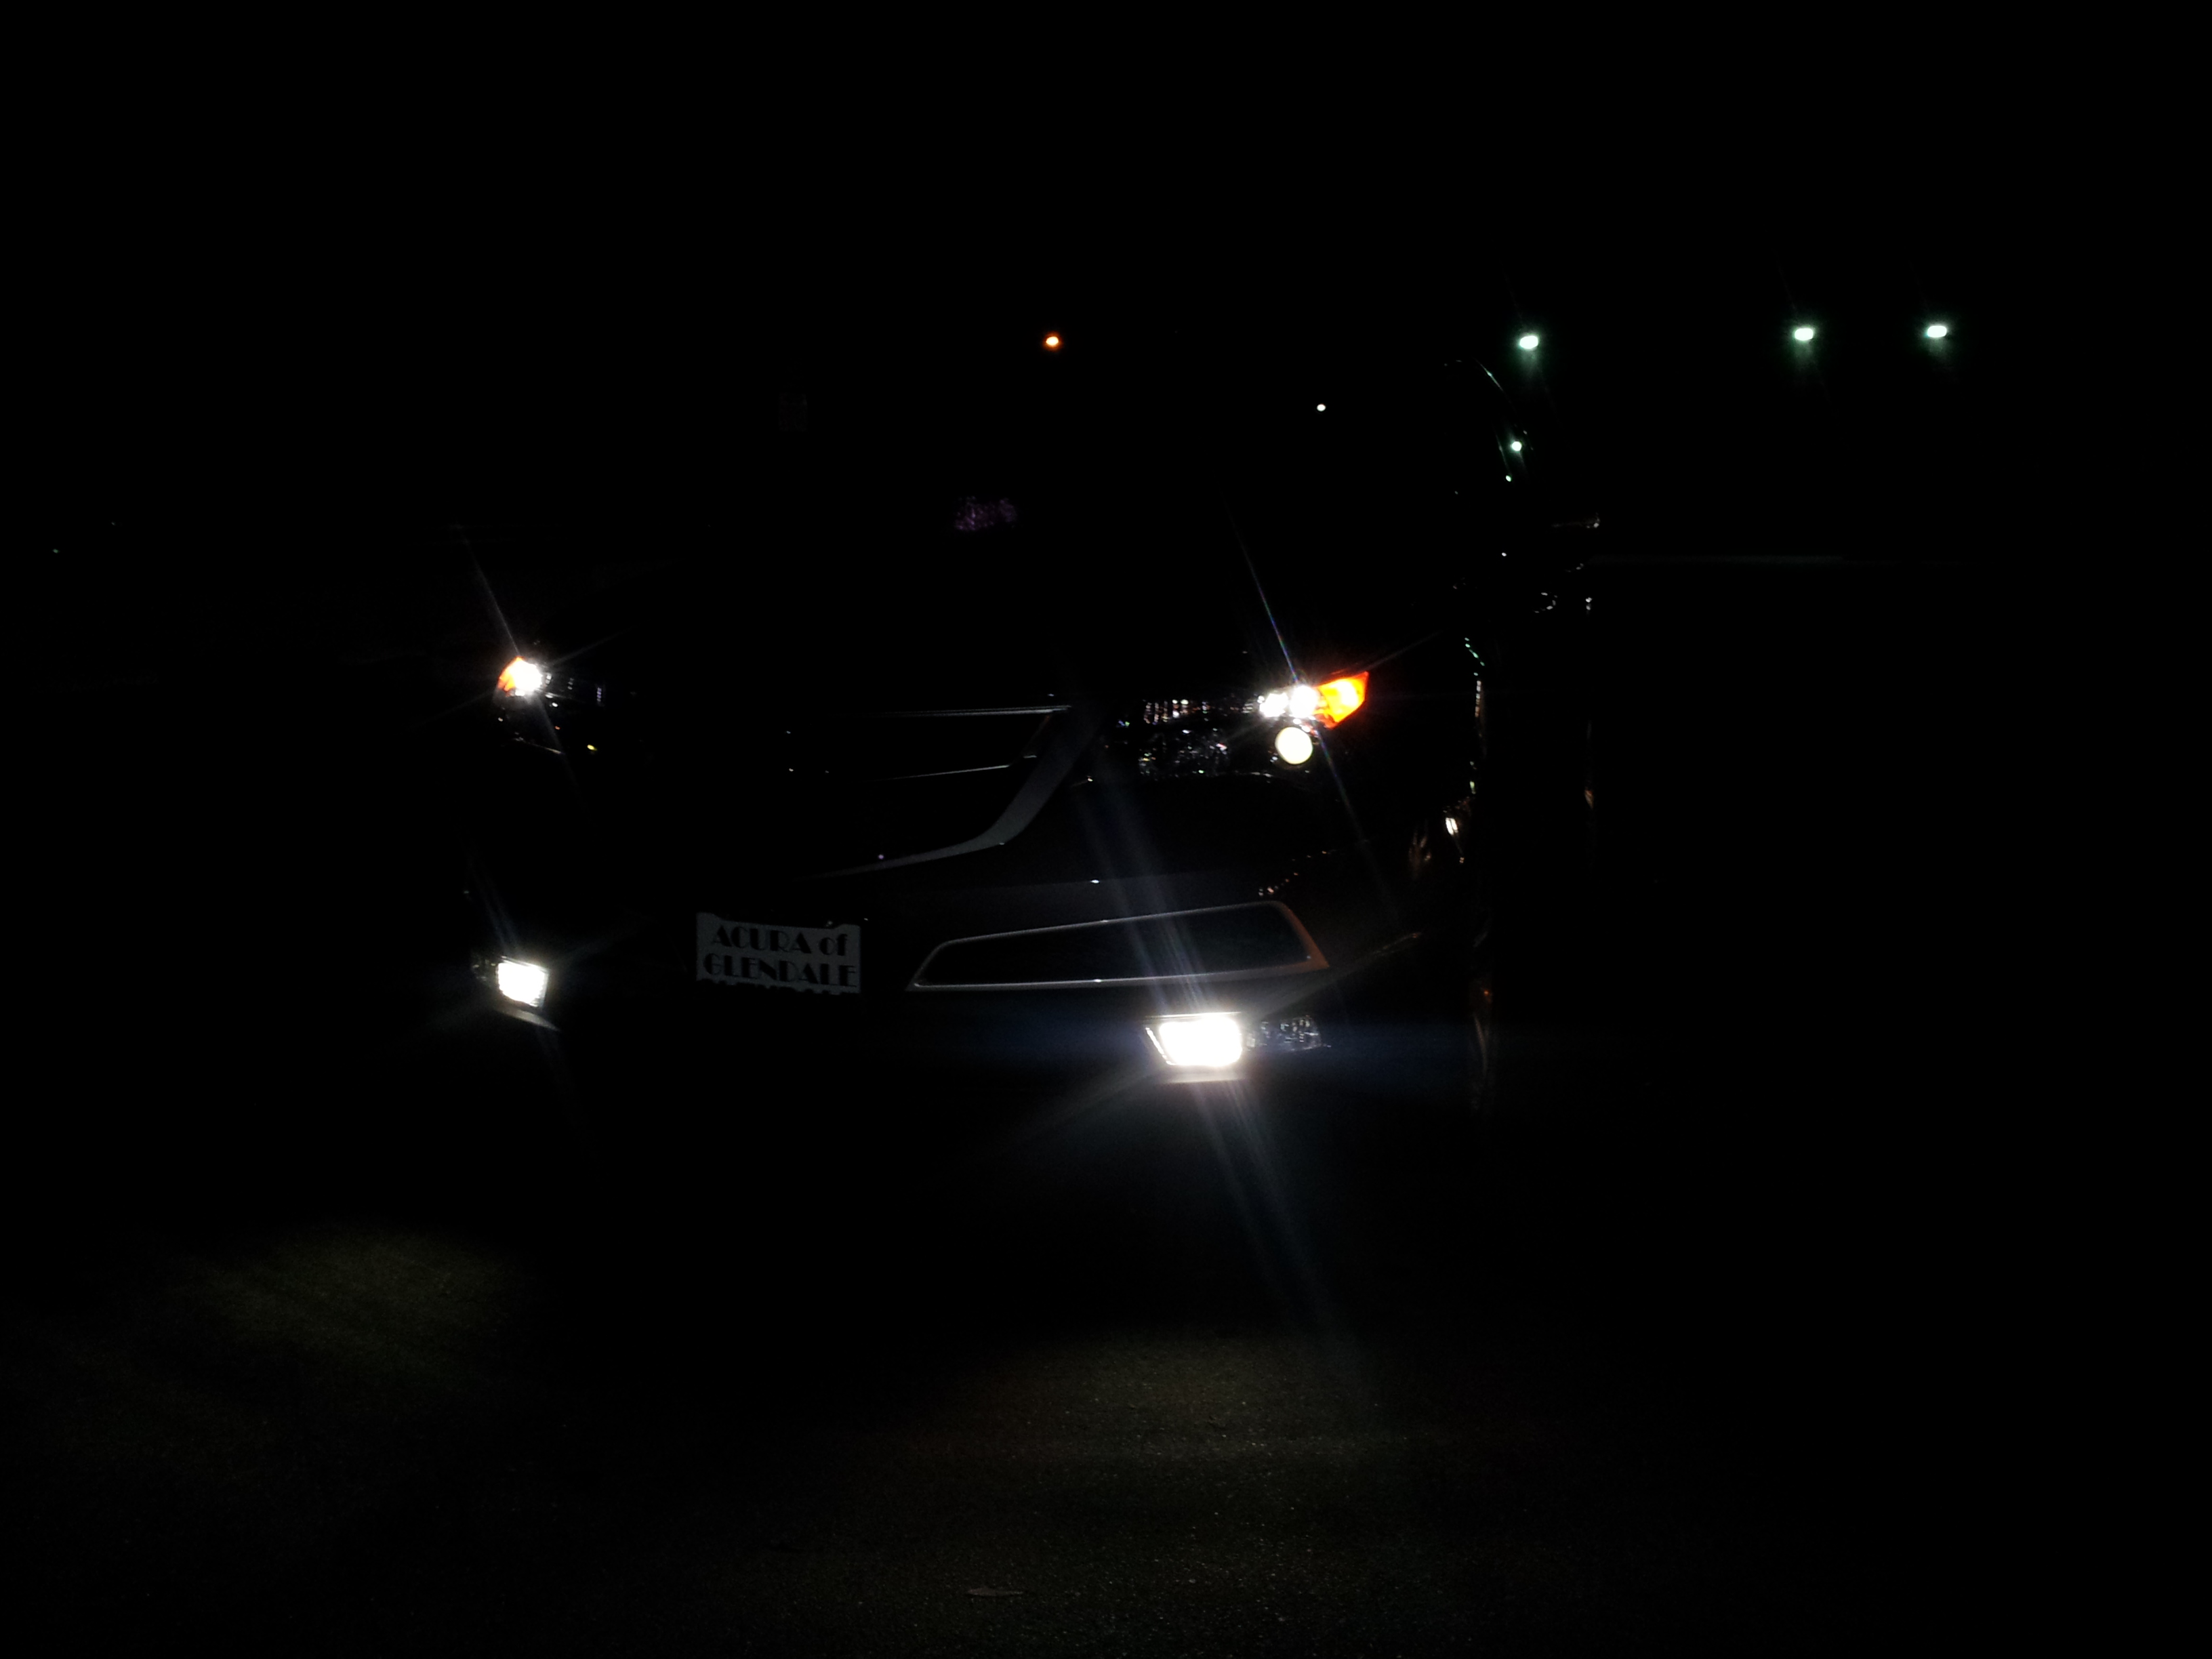 HID Fog/LED DRL Installed - PICS-20121025_214320.jpg